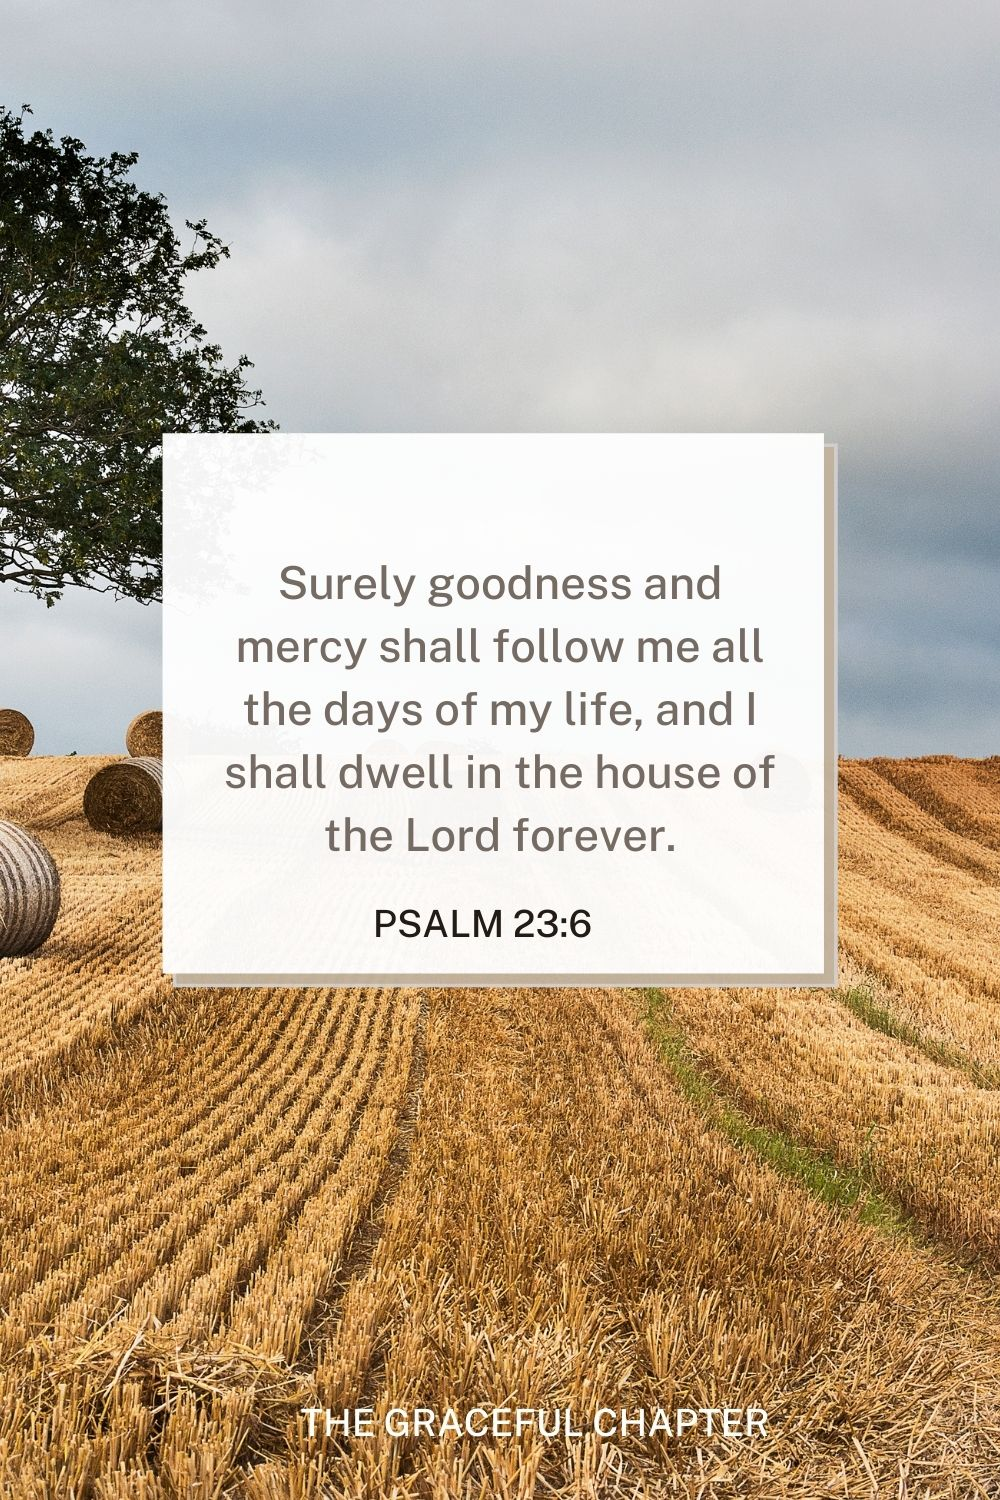 Surely goodness and mercy shall follow me all the days of my life, and I shall dwell in the house of the Lord forever. Psalm 23:6